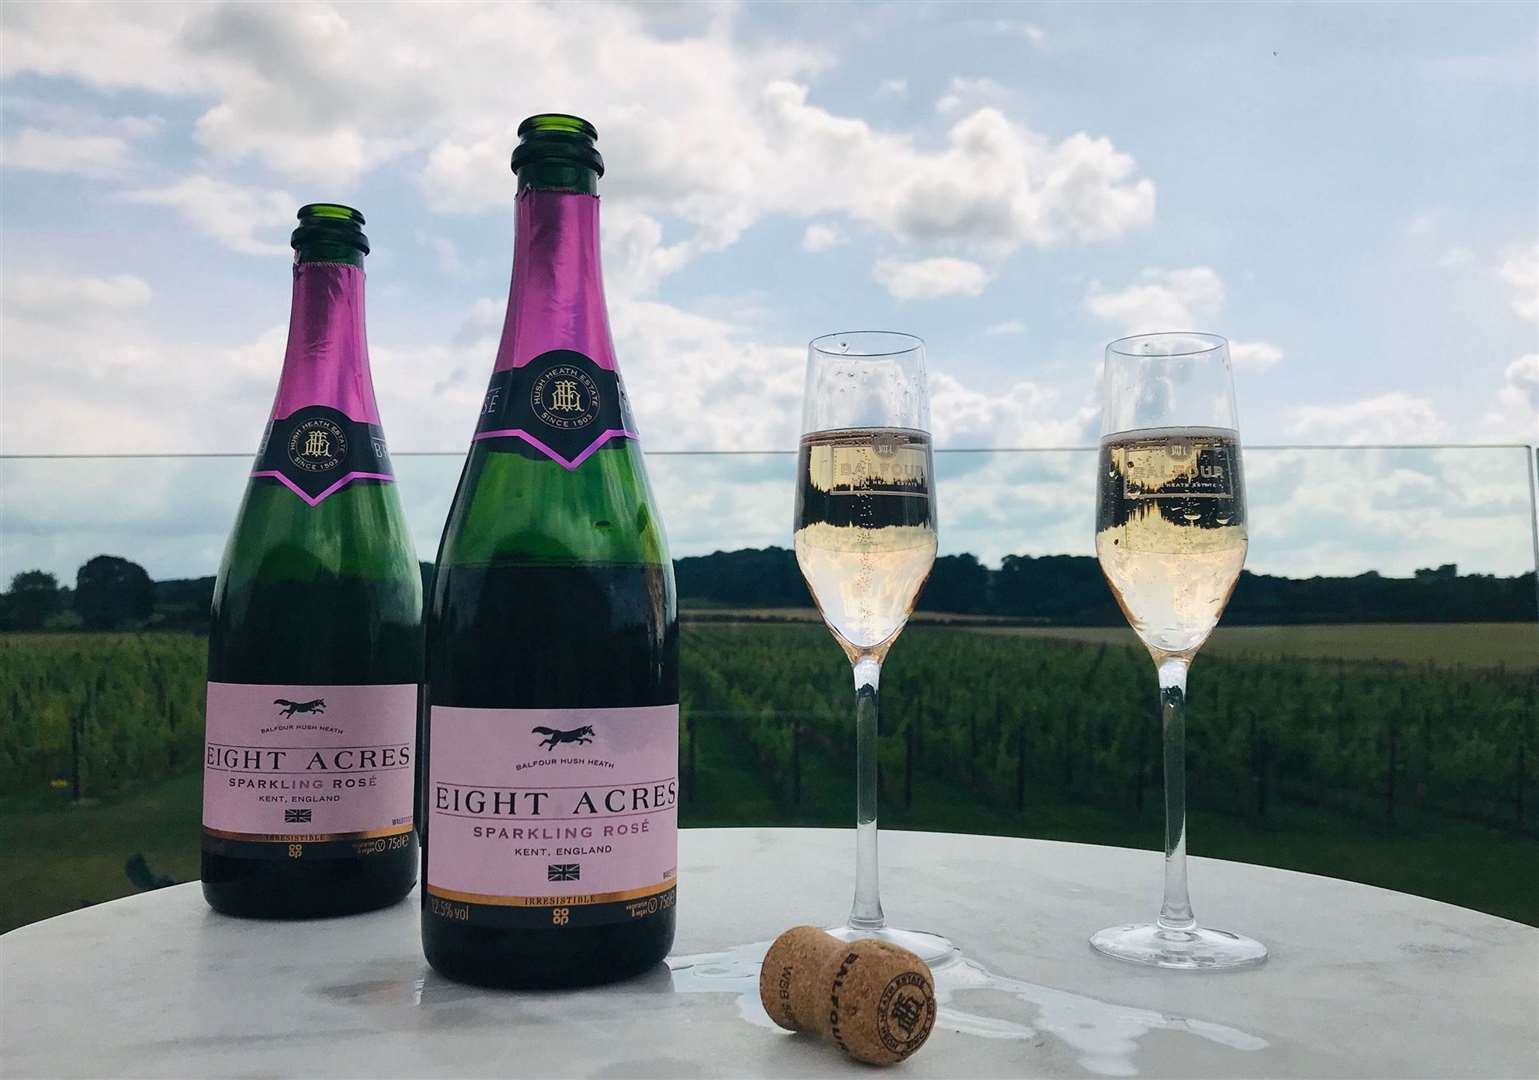 Hush Heath's Eight Acres Sparkling Rose with the Co-op